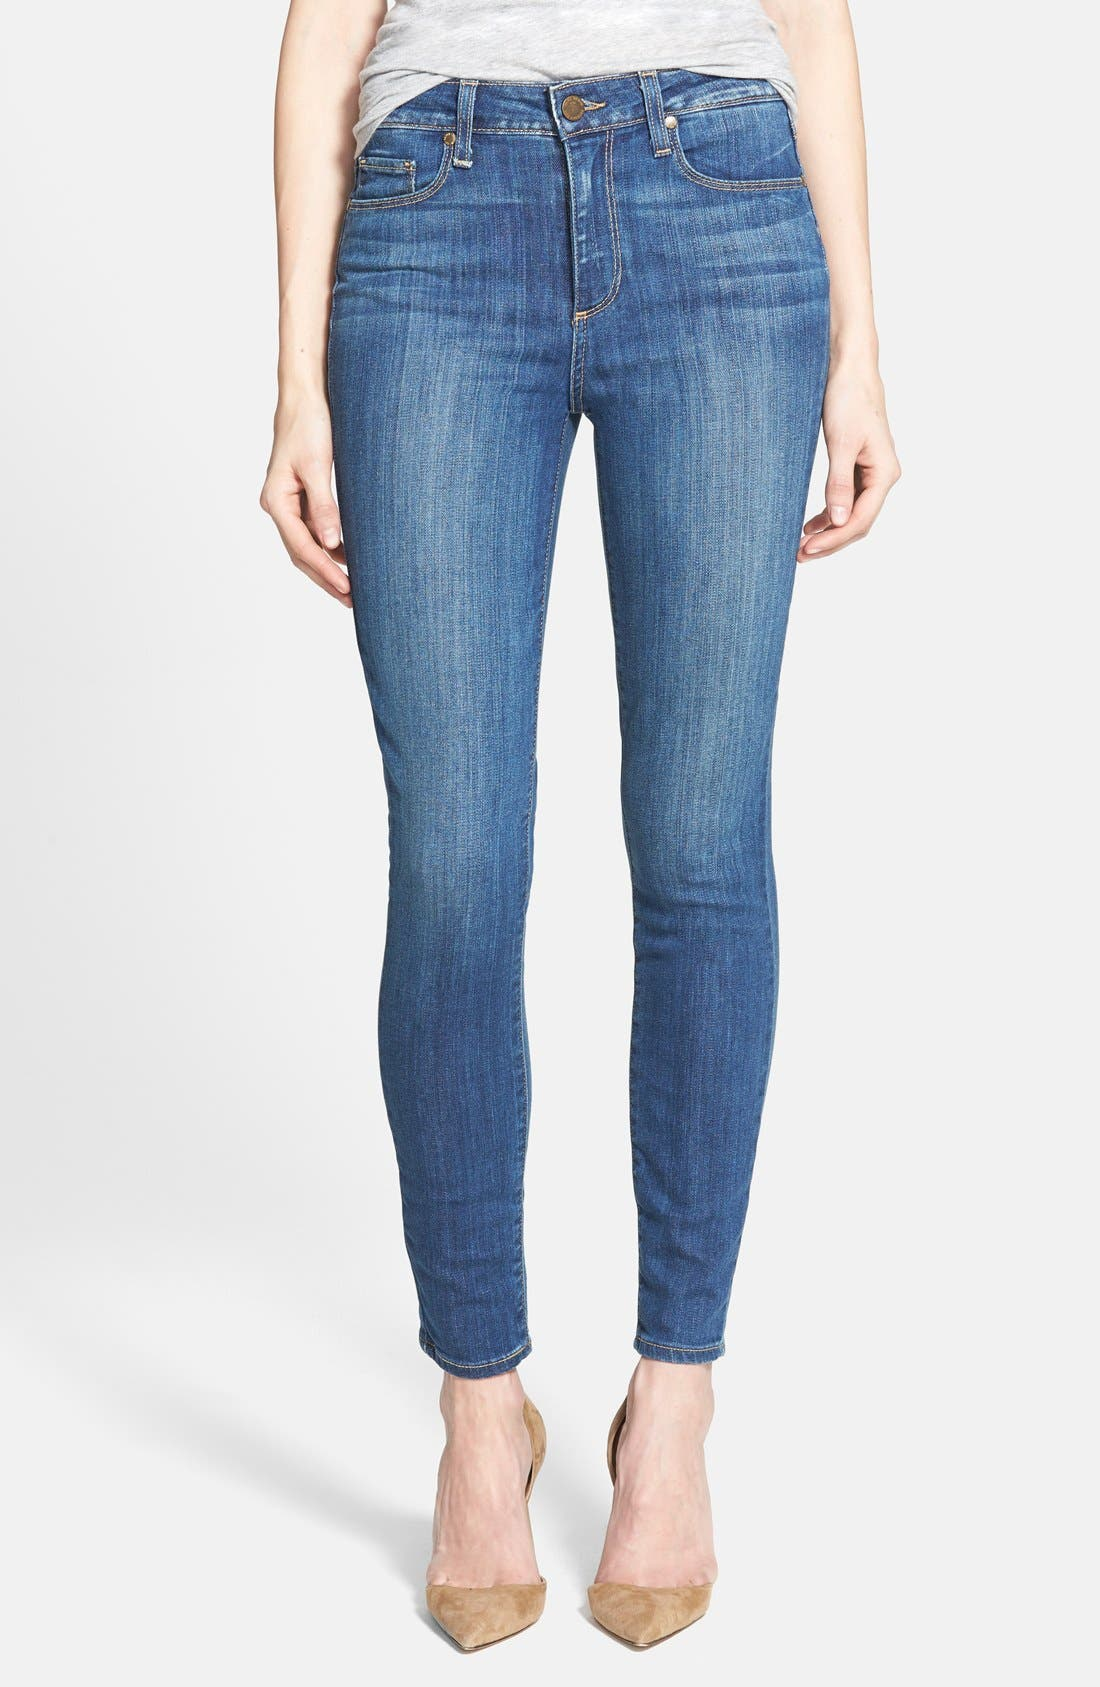 Alternate Image 1 Selected - Paige Denim 'Hoxton' Ankle Jeans (Orson Blue)